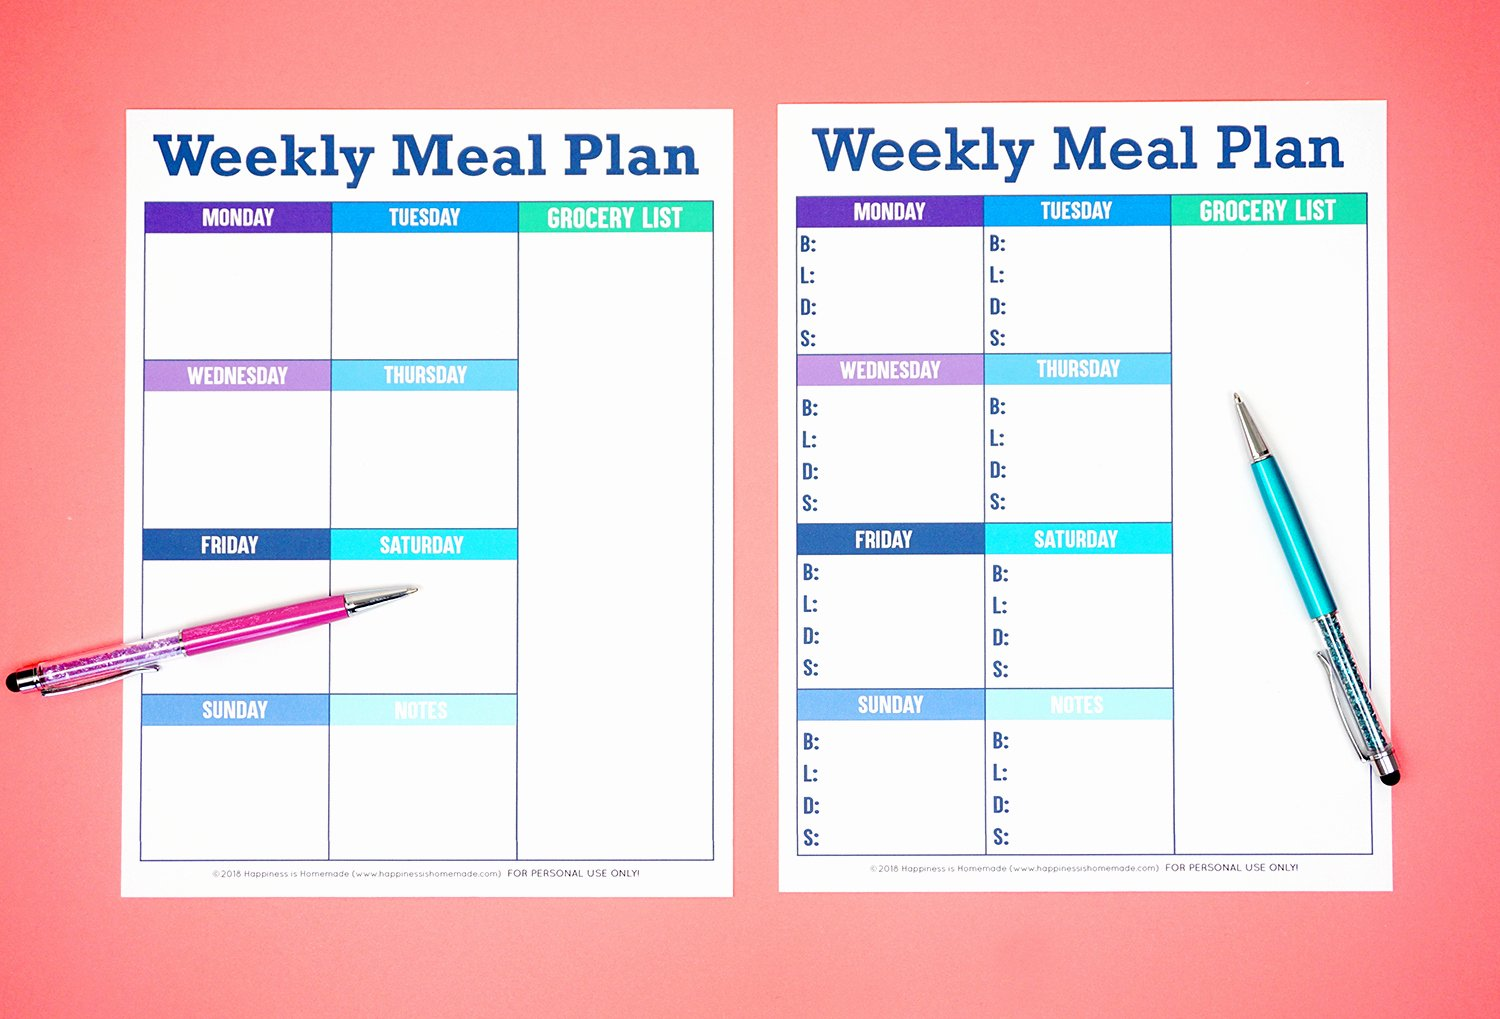 Free Menu Plan Template Inspirational Printable Weekly Meal Planner Template Happiness is Homemade